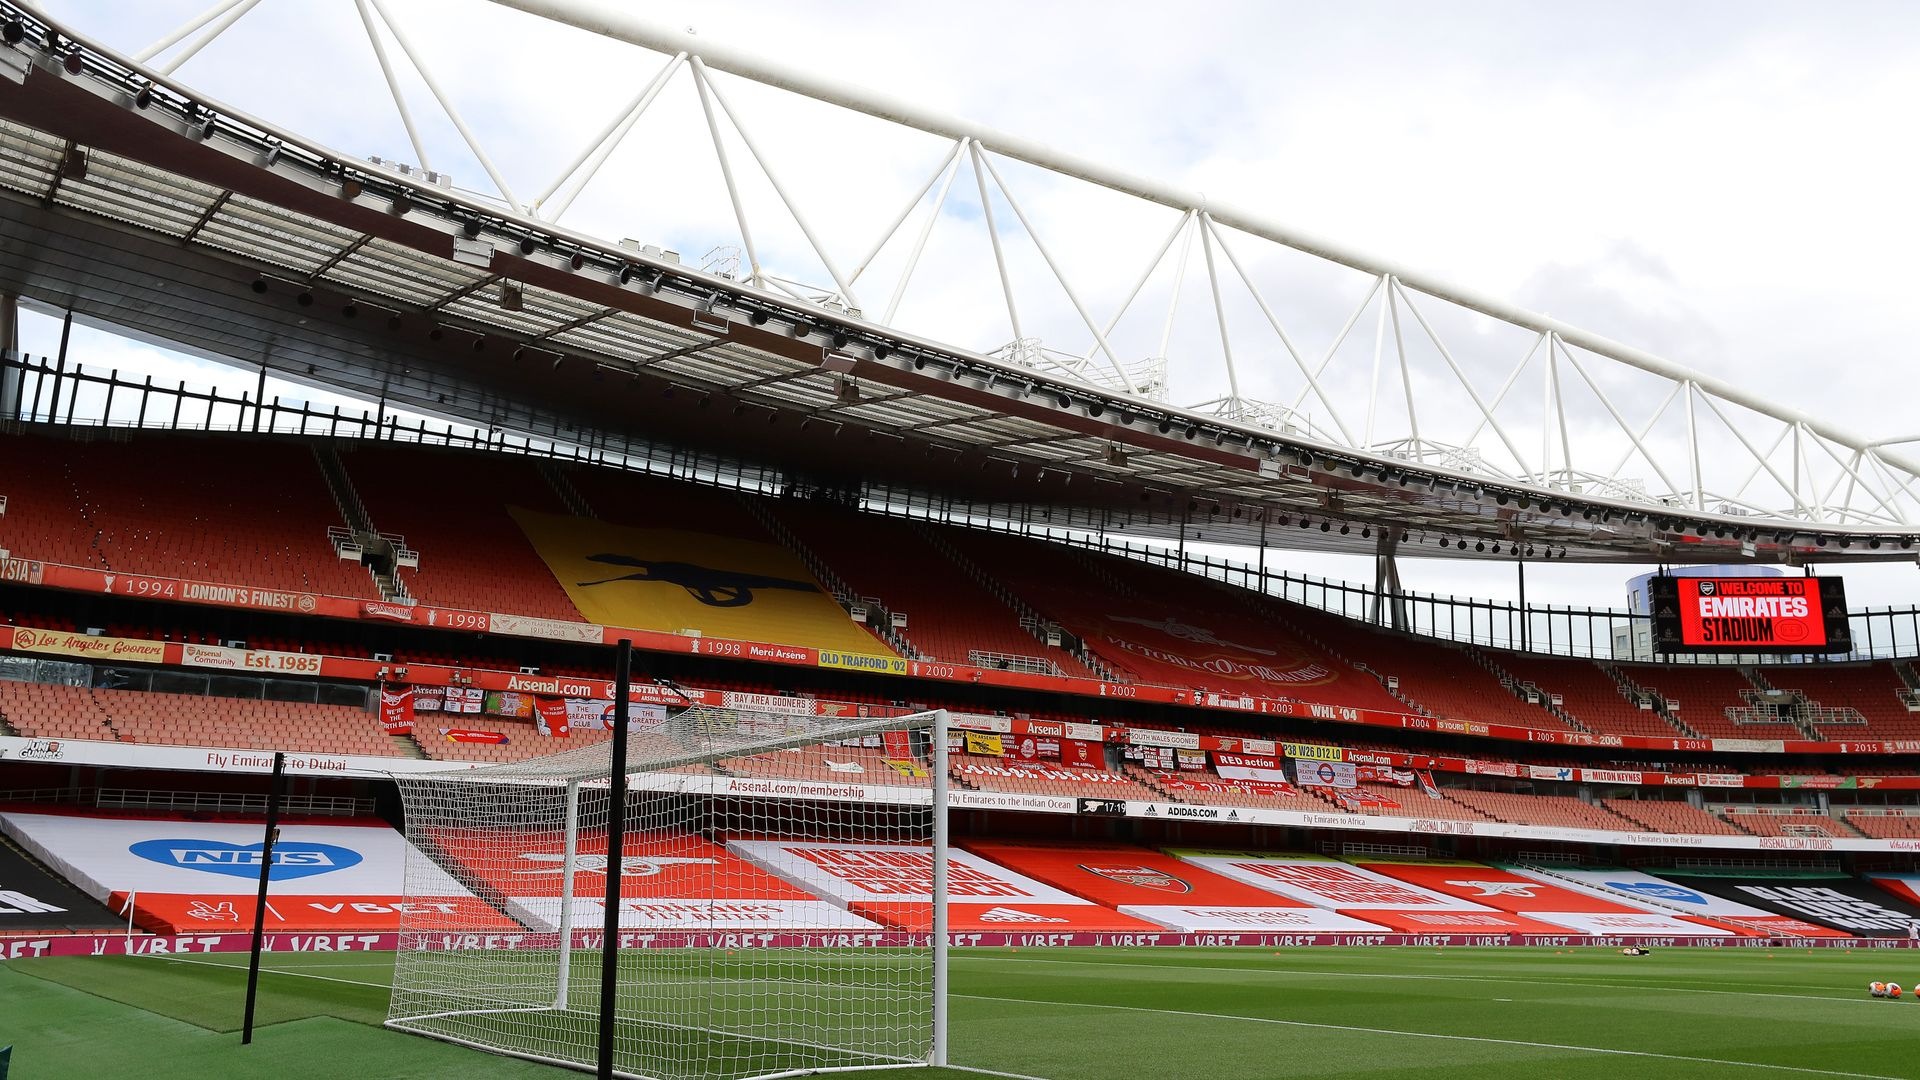 Arsenal to allow reduced attendance v Sheff Utd